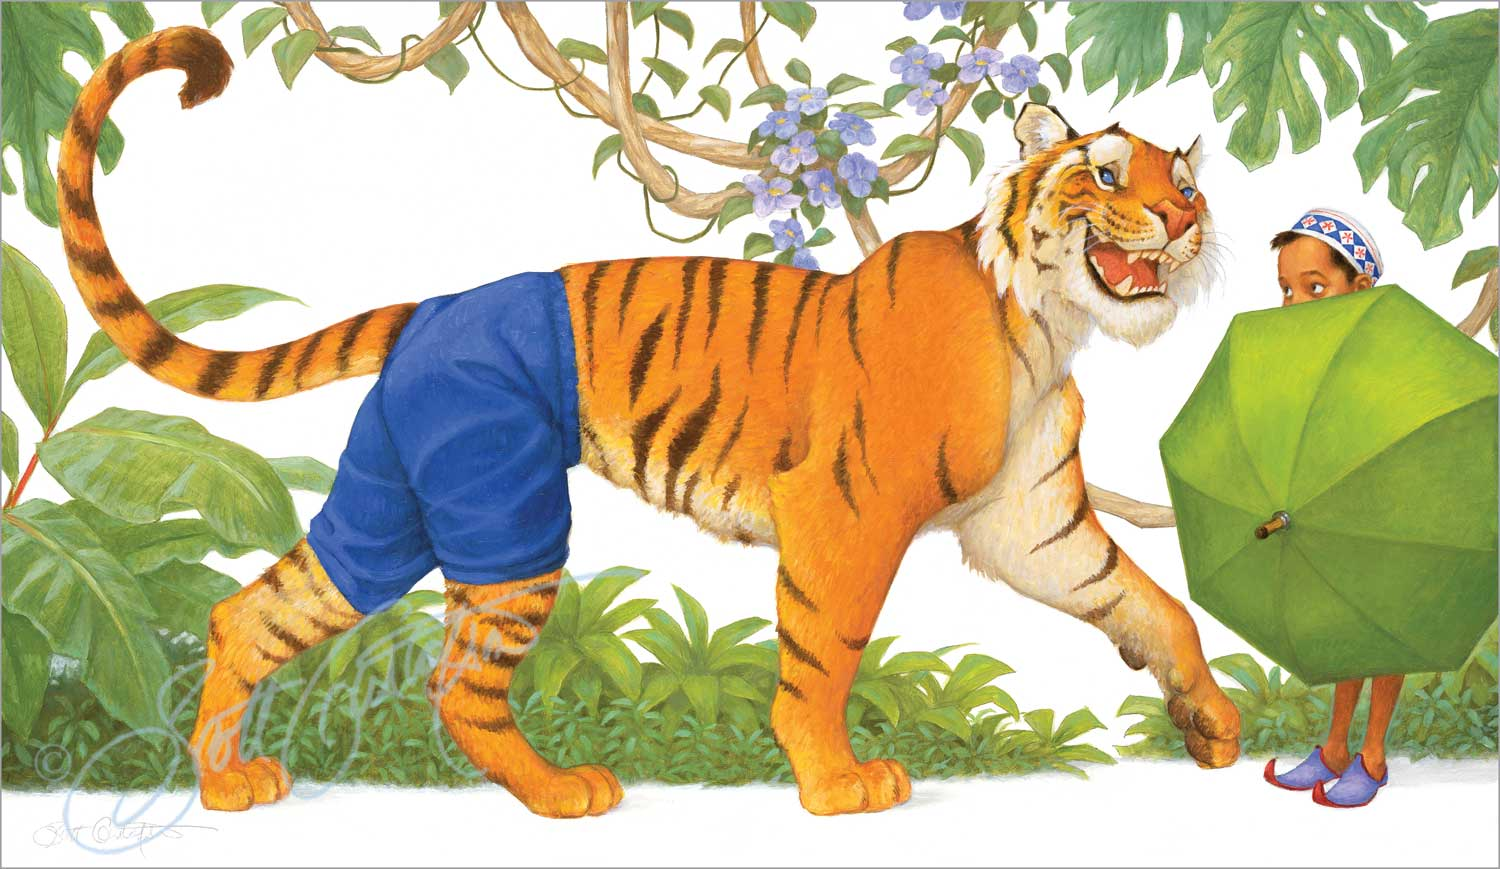 Sambha and the Tiger with Blue Trousers